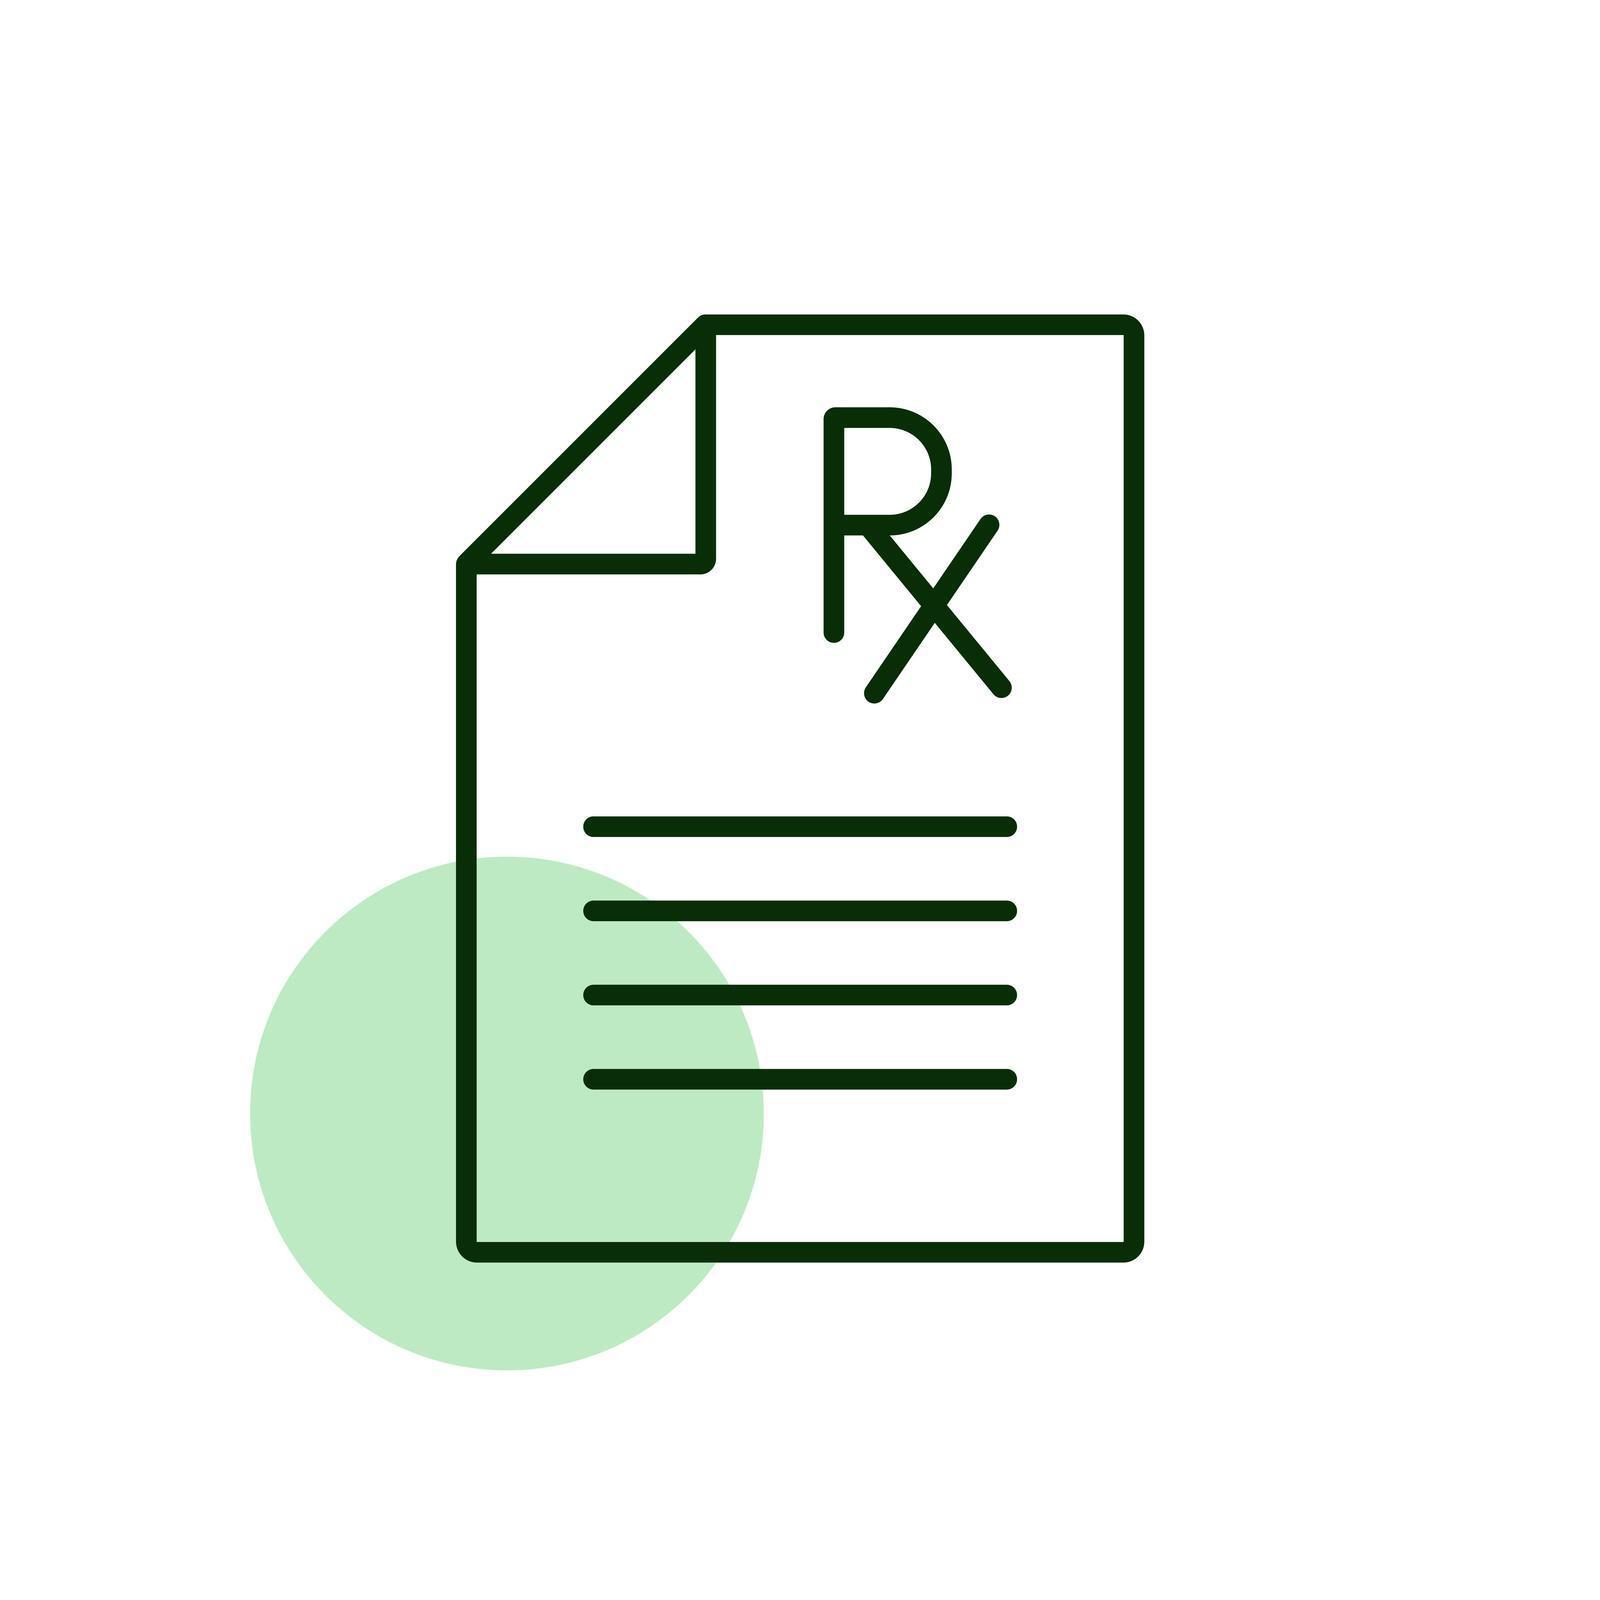 Artwork of an RX prescription pad with a green circle symbolizing a legal treatment with medical marijuana for a qualifying condition.